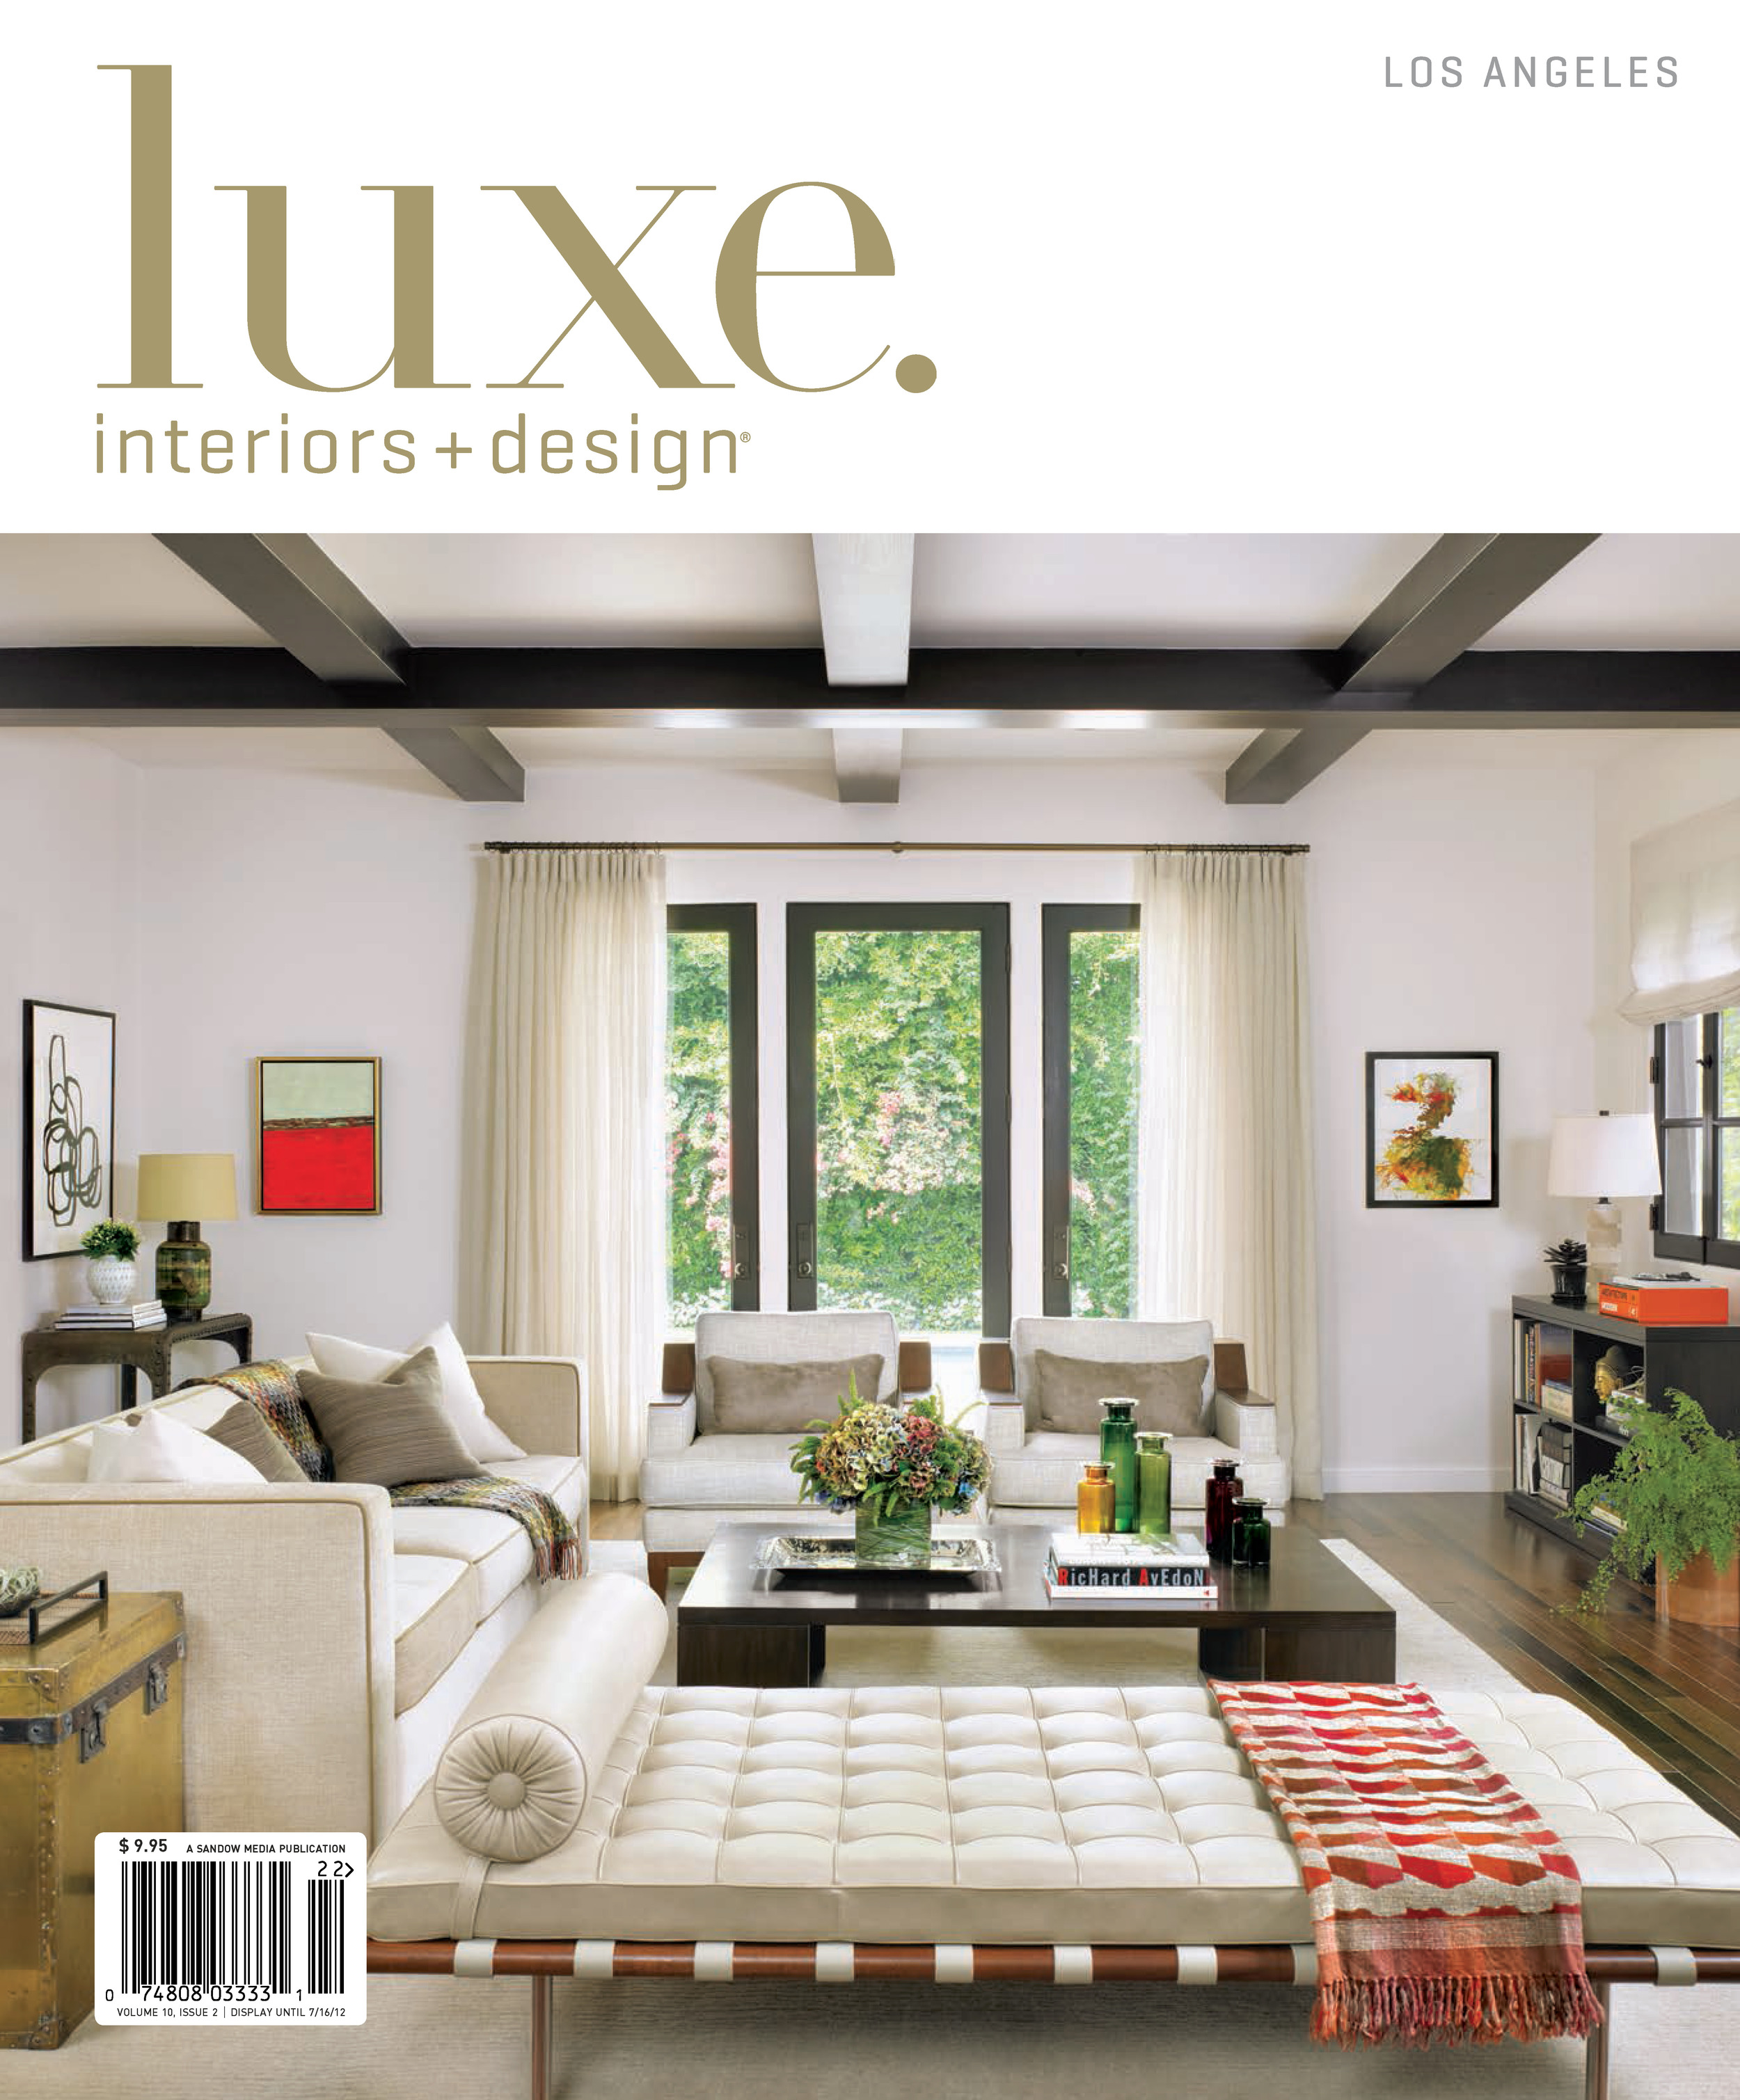 Luxe LA Cover - Spring 2012 - West Hollywood Bungalow.jpg